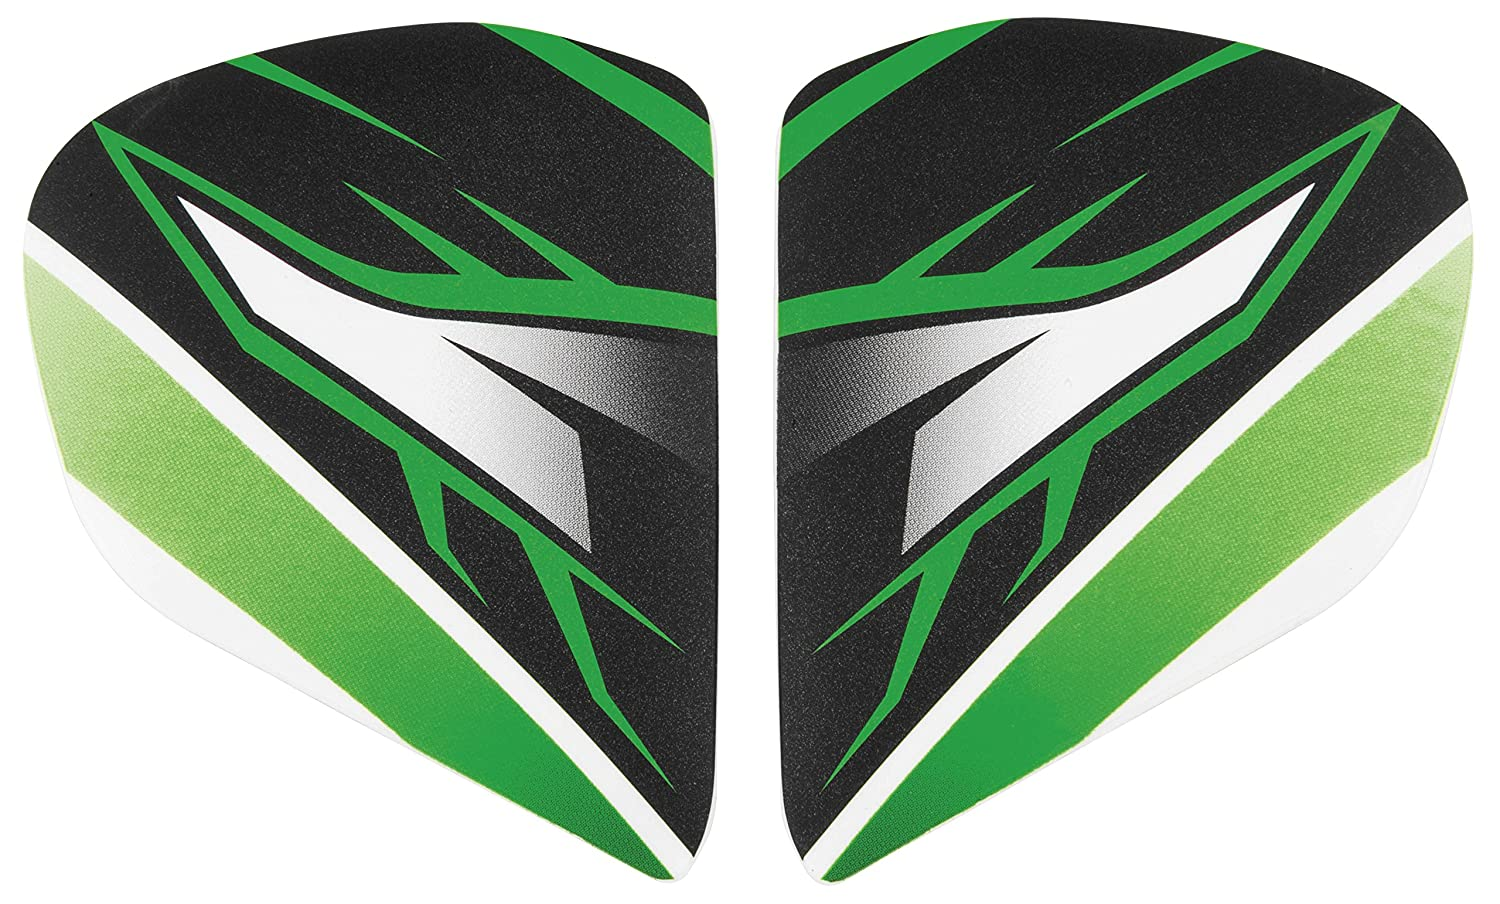 Amazon.es: Cascos 820206 Shield cubierta para corsair-x cascos - fantasma verde